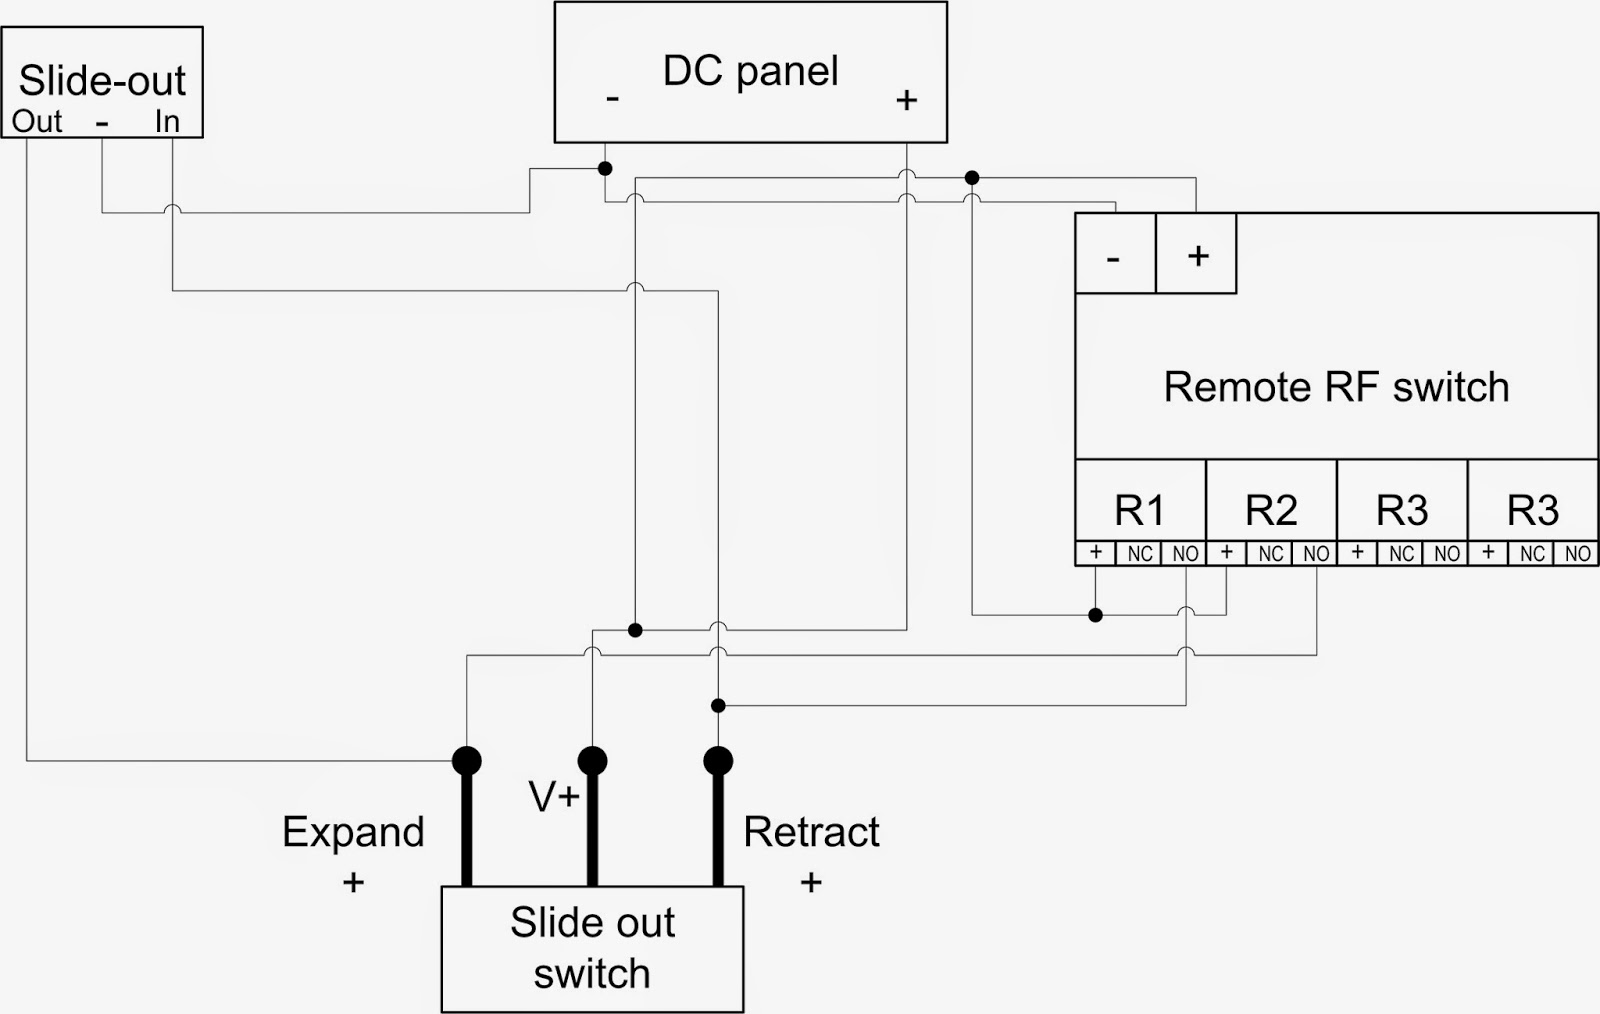 remoteRF my rv mods remote control for slide out rockwood 2702ss travel trailer wiring diagram at edmiracle.co